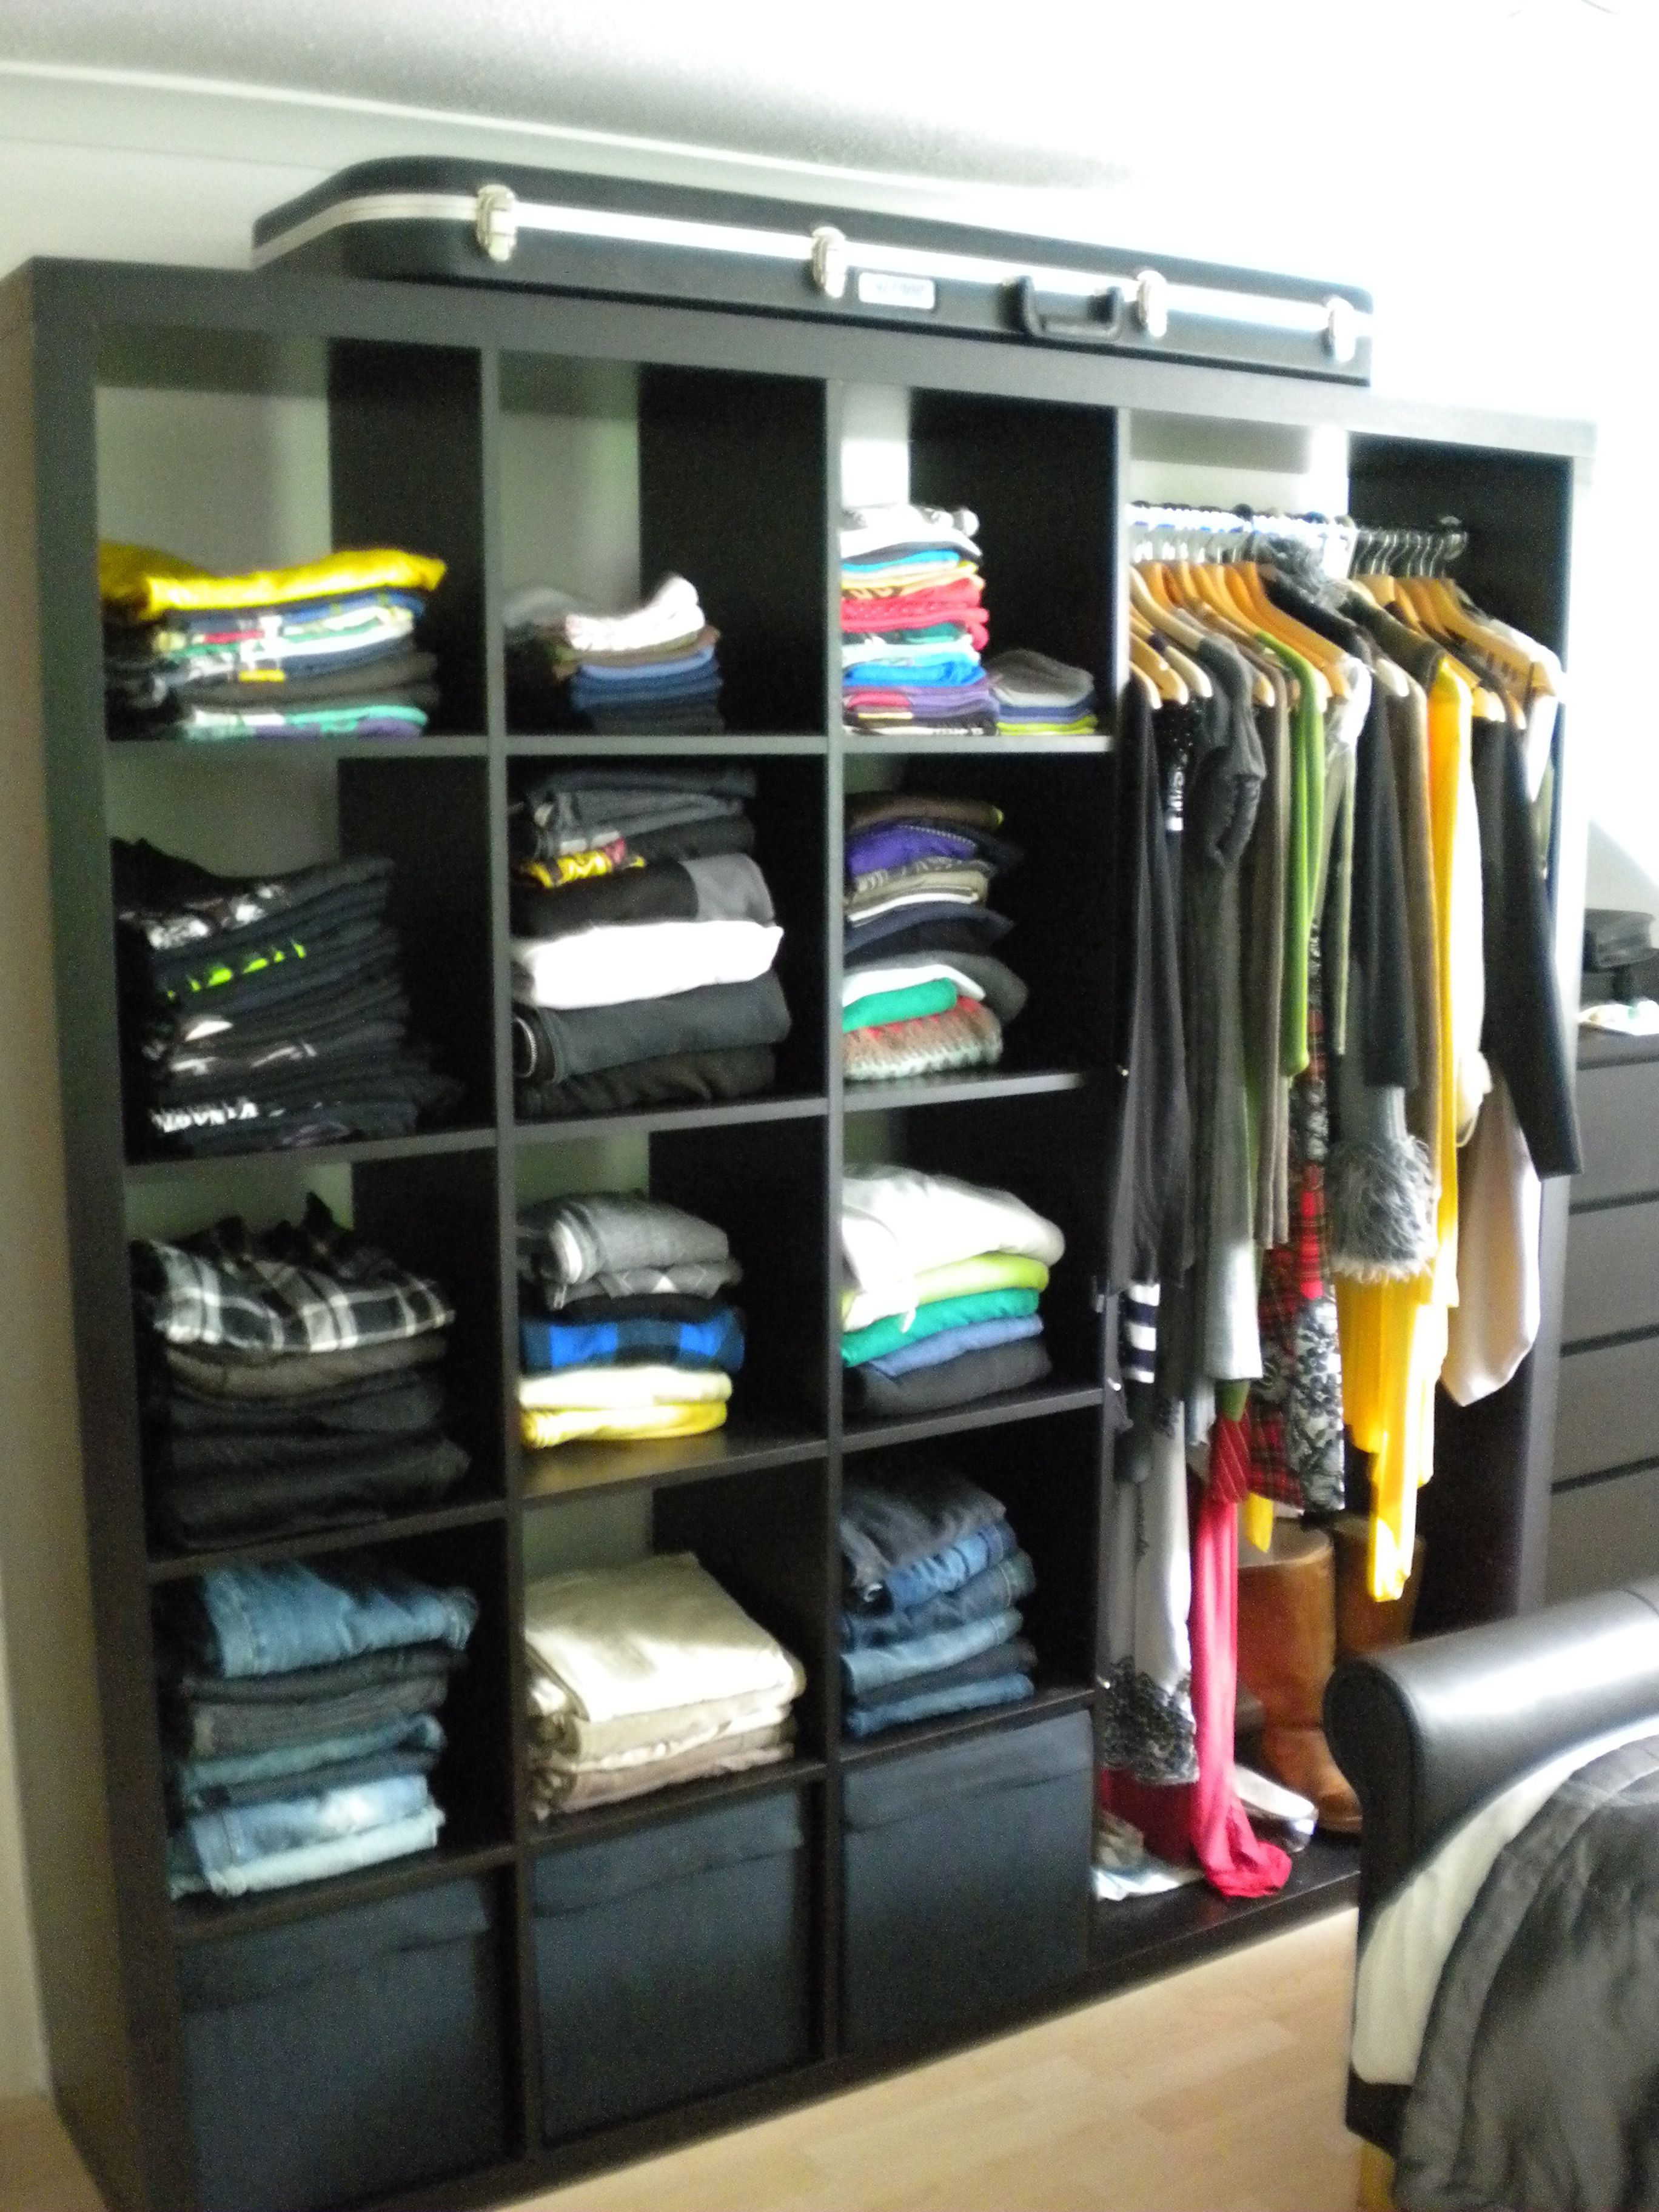 Ide dressing ikea cool dressing dans placard grenoble for Ikea emplacements dans ohio